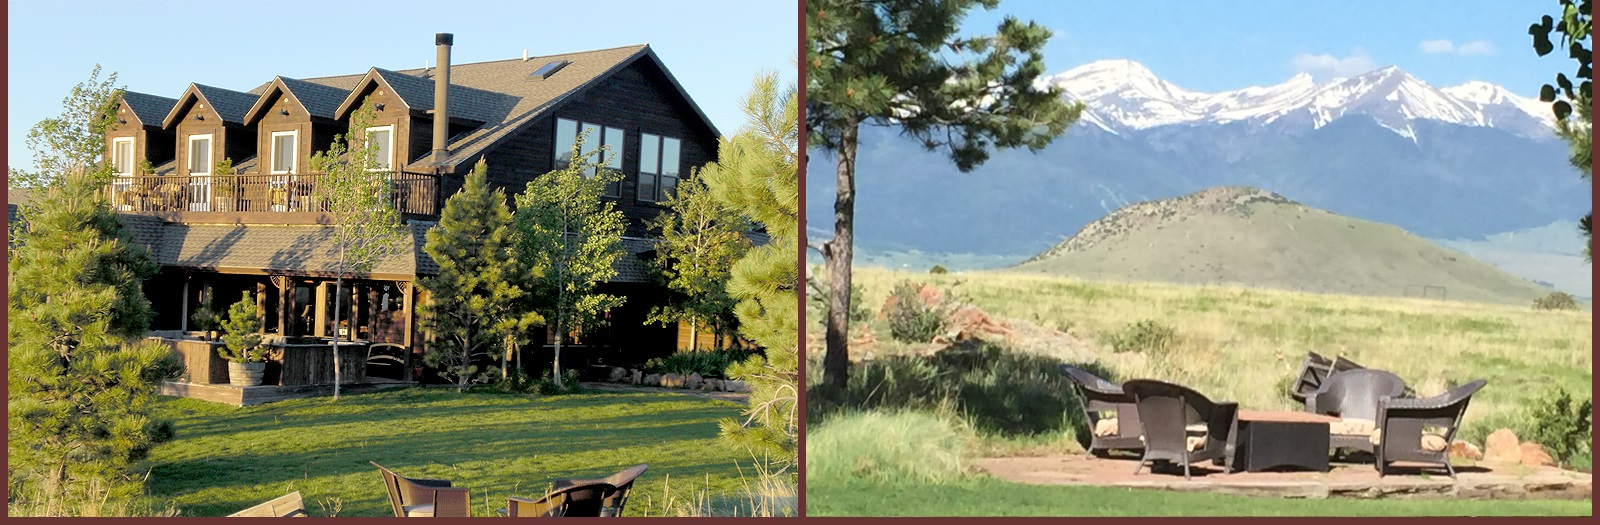 rental cabins homeaway colorado ranch estate for reunions vacation rent private sp